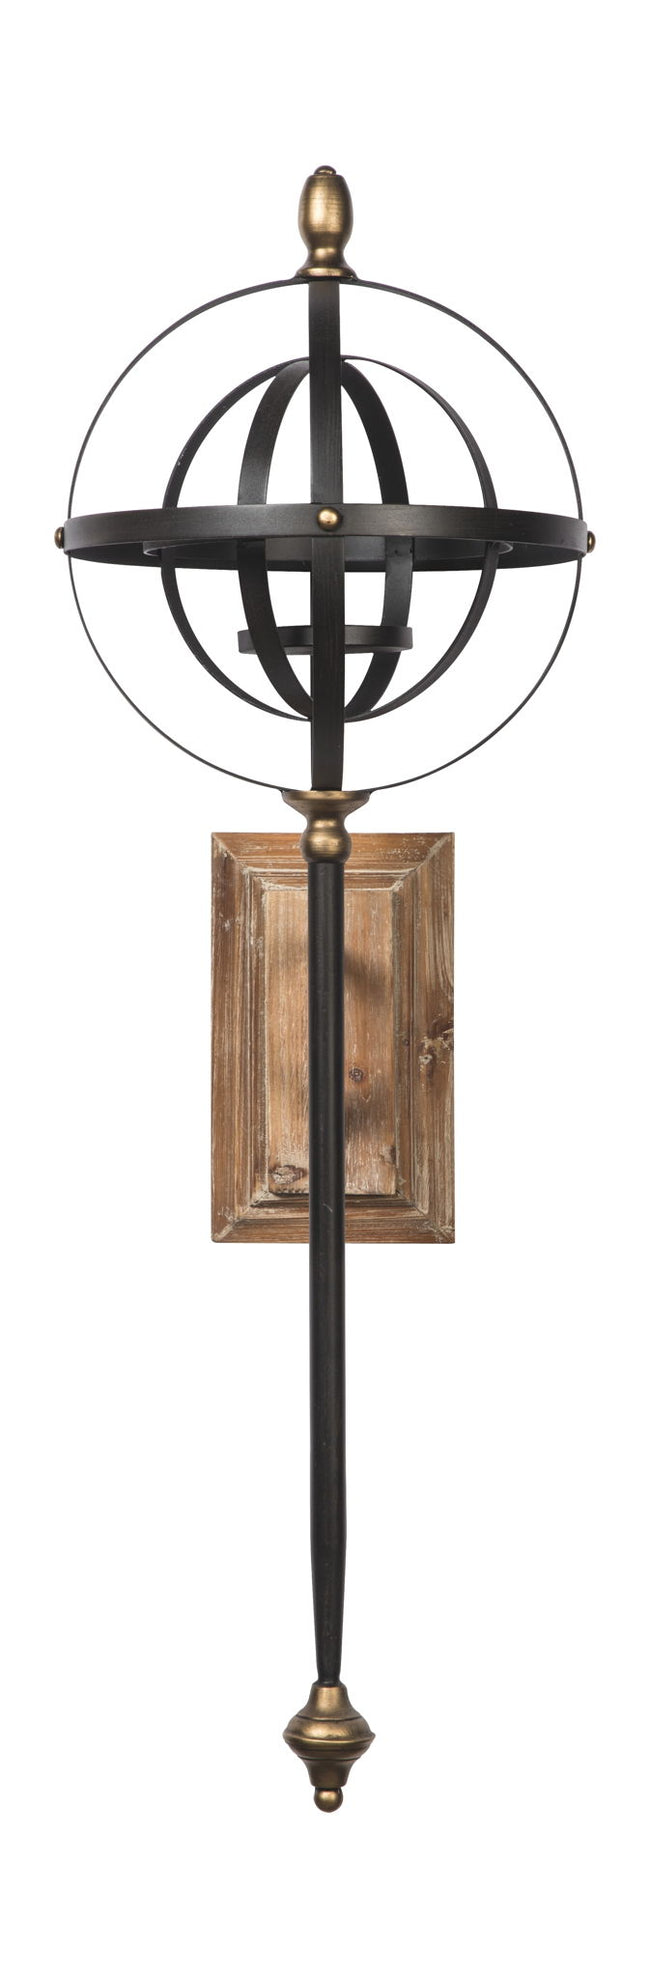 Dina Wall Sconce | Calgary's Furniture Store